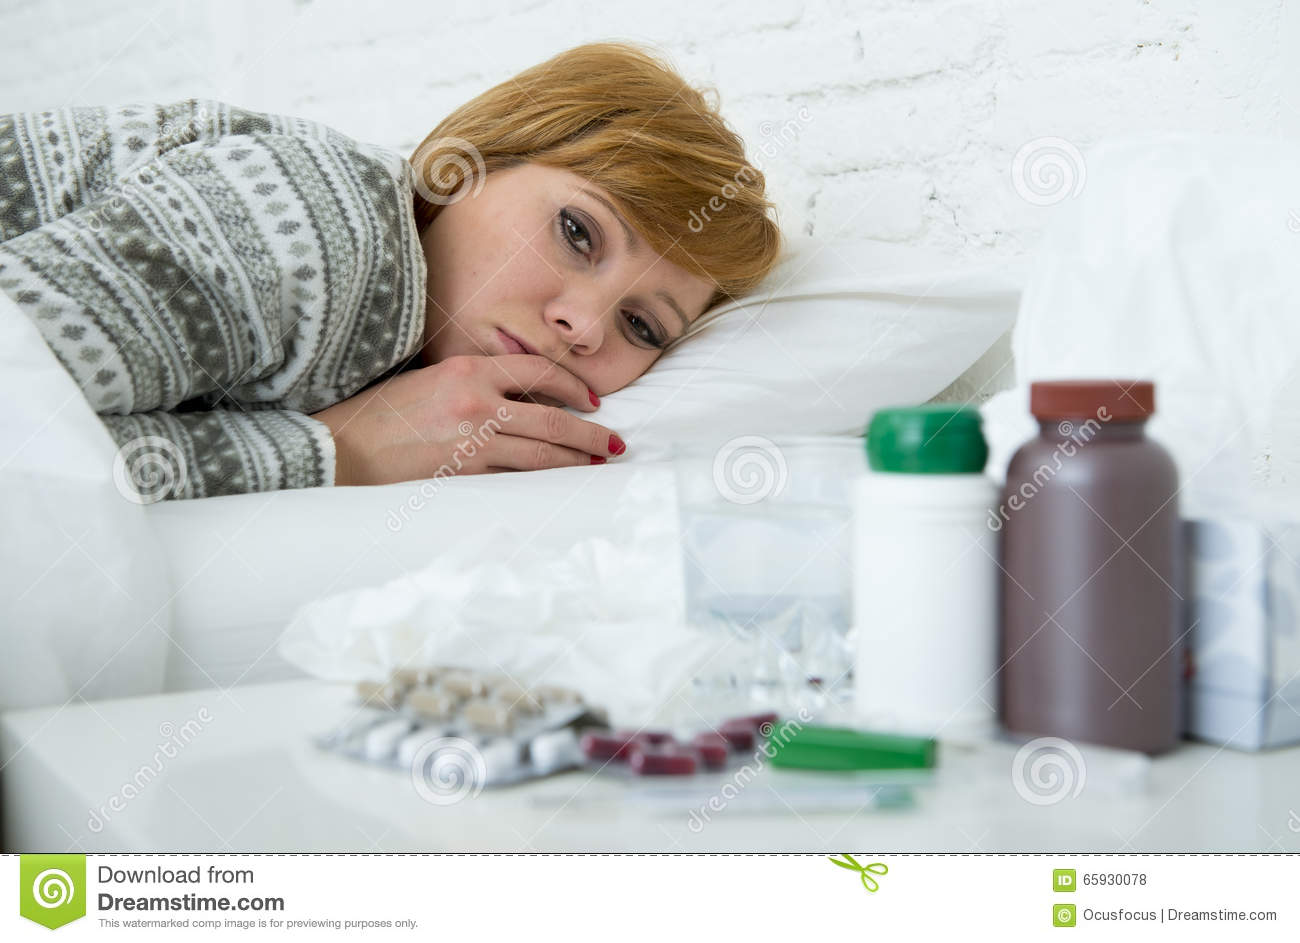 Are cold meds dangerous for very young kids